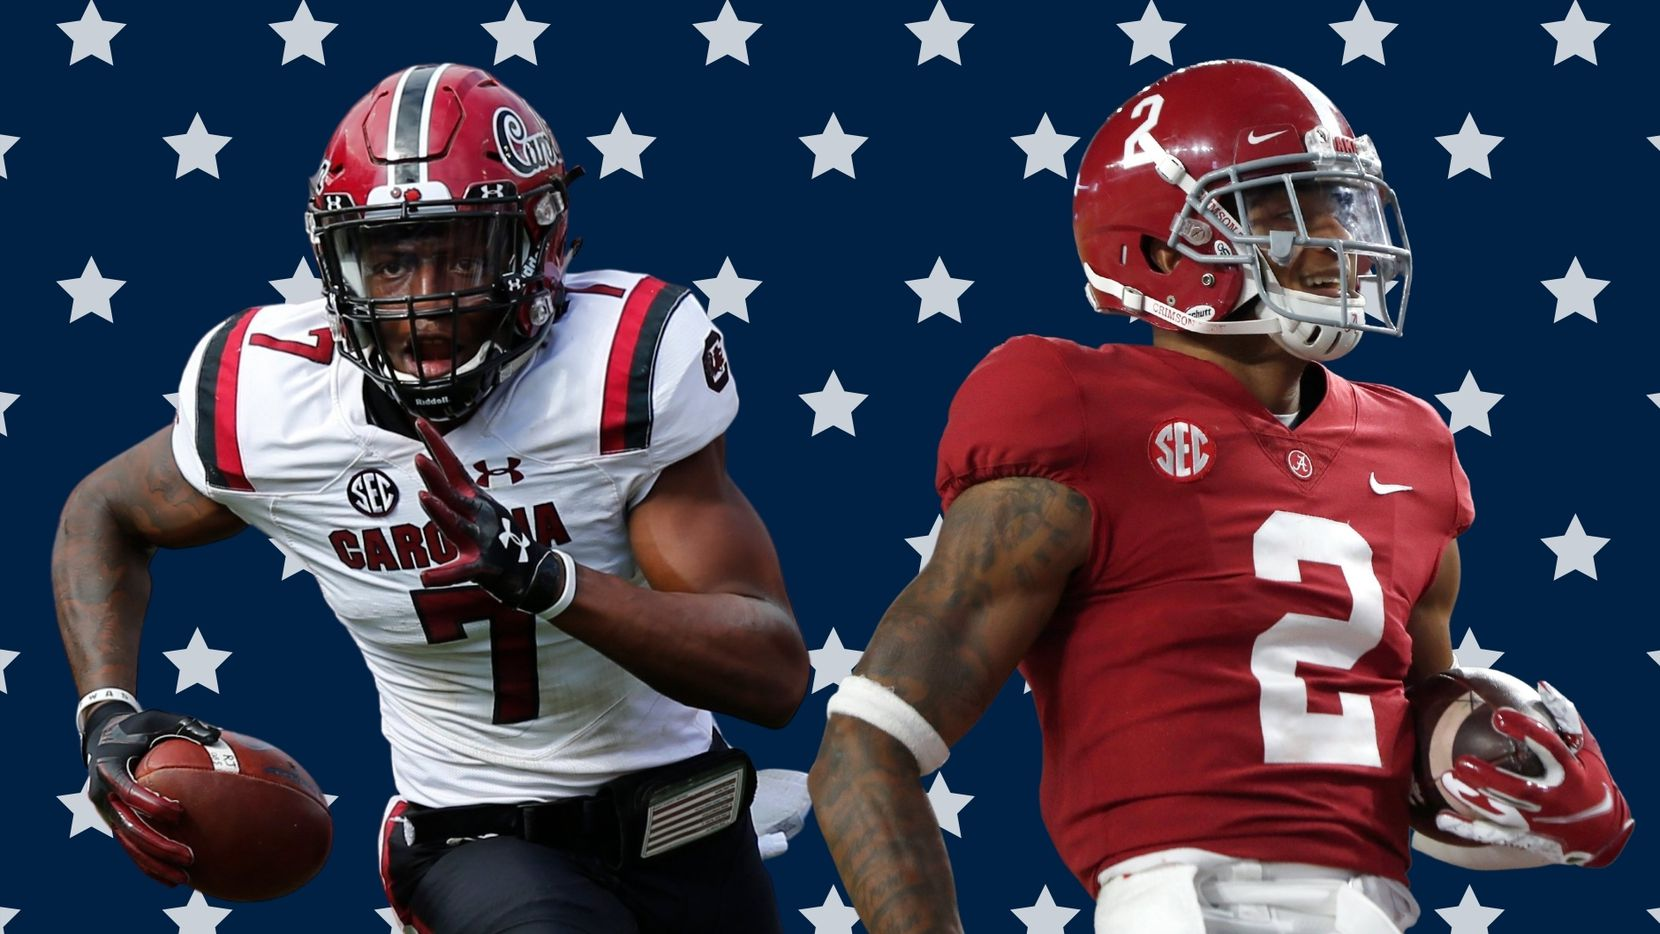 Both Jaycee Horn (left) and Patrick Surtain II (right) are elite cornerback talents with NFL bloodlines who dominated the competition in college football's toughest conference (SEC). So, if both are available, who should the Cowboys choose with the 10th overall pick? (Photos via Getty Images/ Edit by SportsDay)